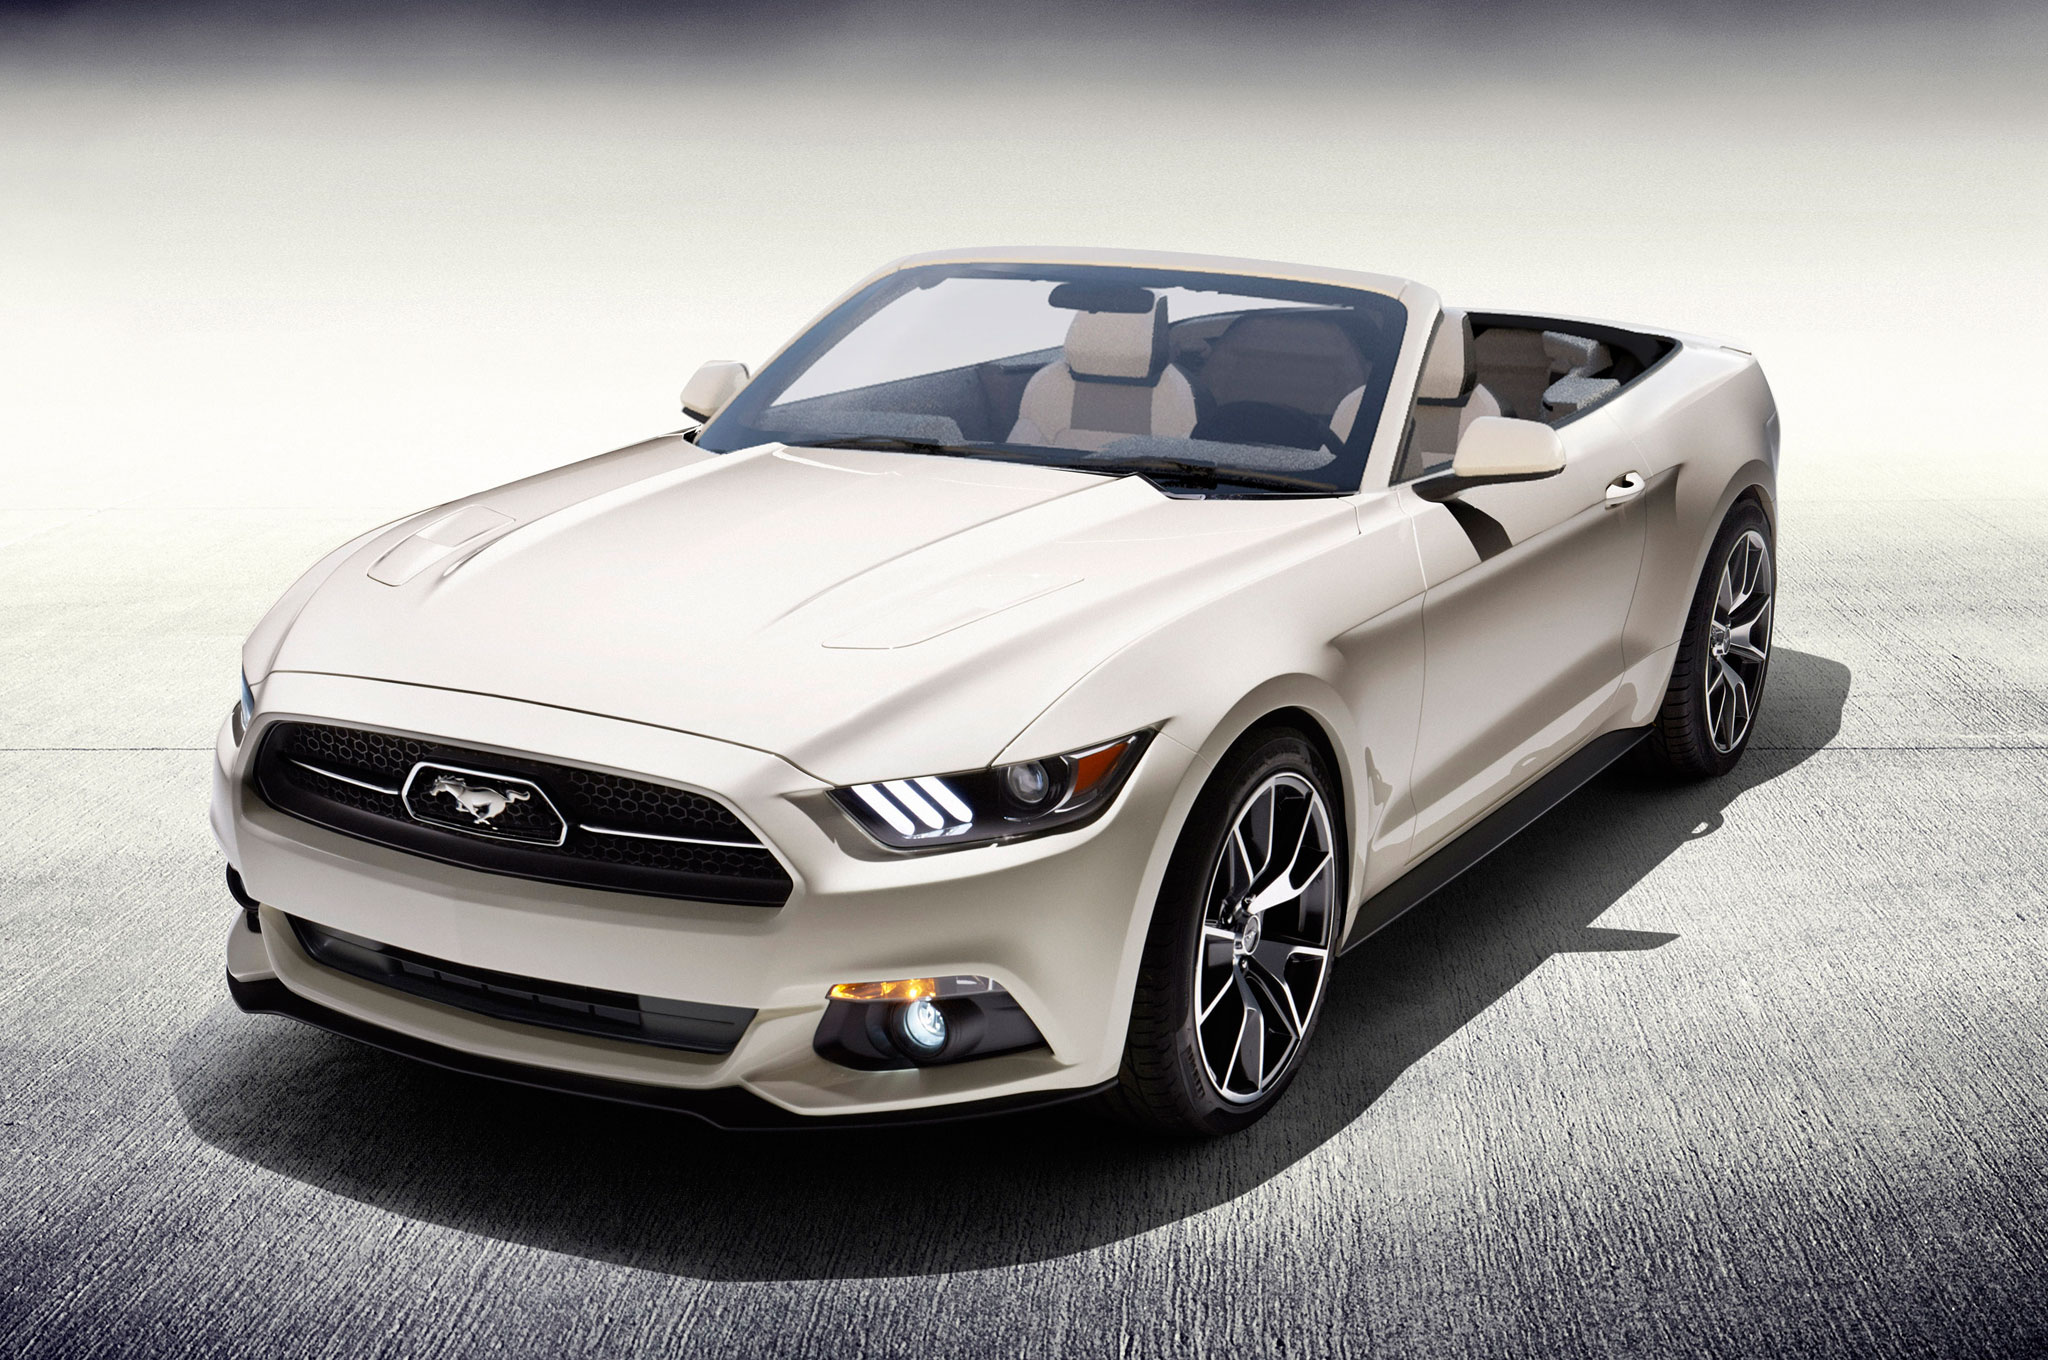 2048x1360 - Ford Convertible Wallpapers 26